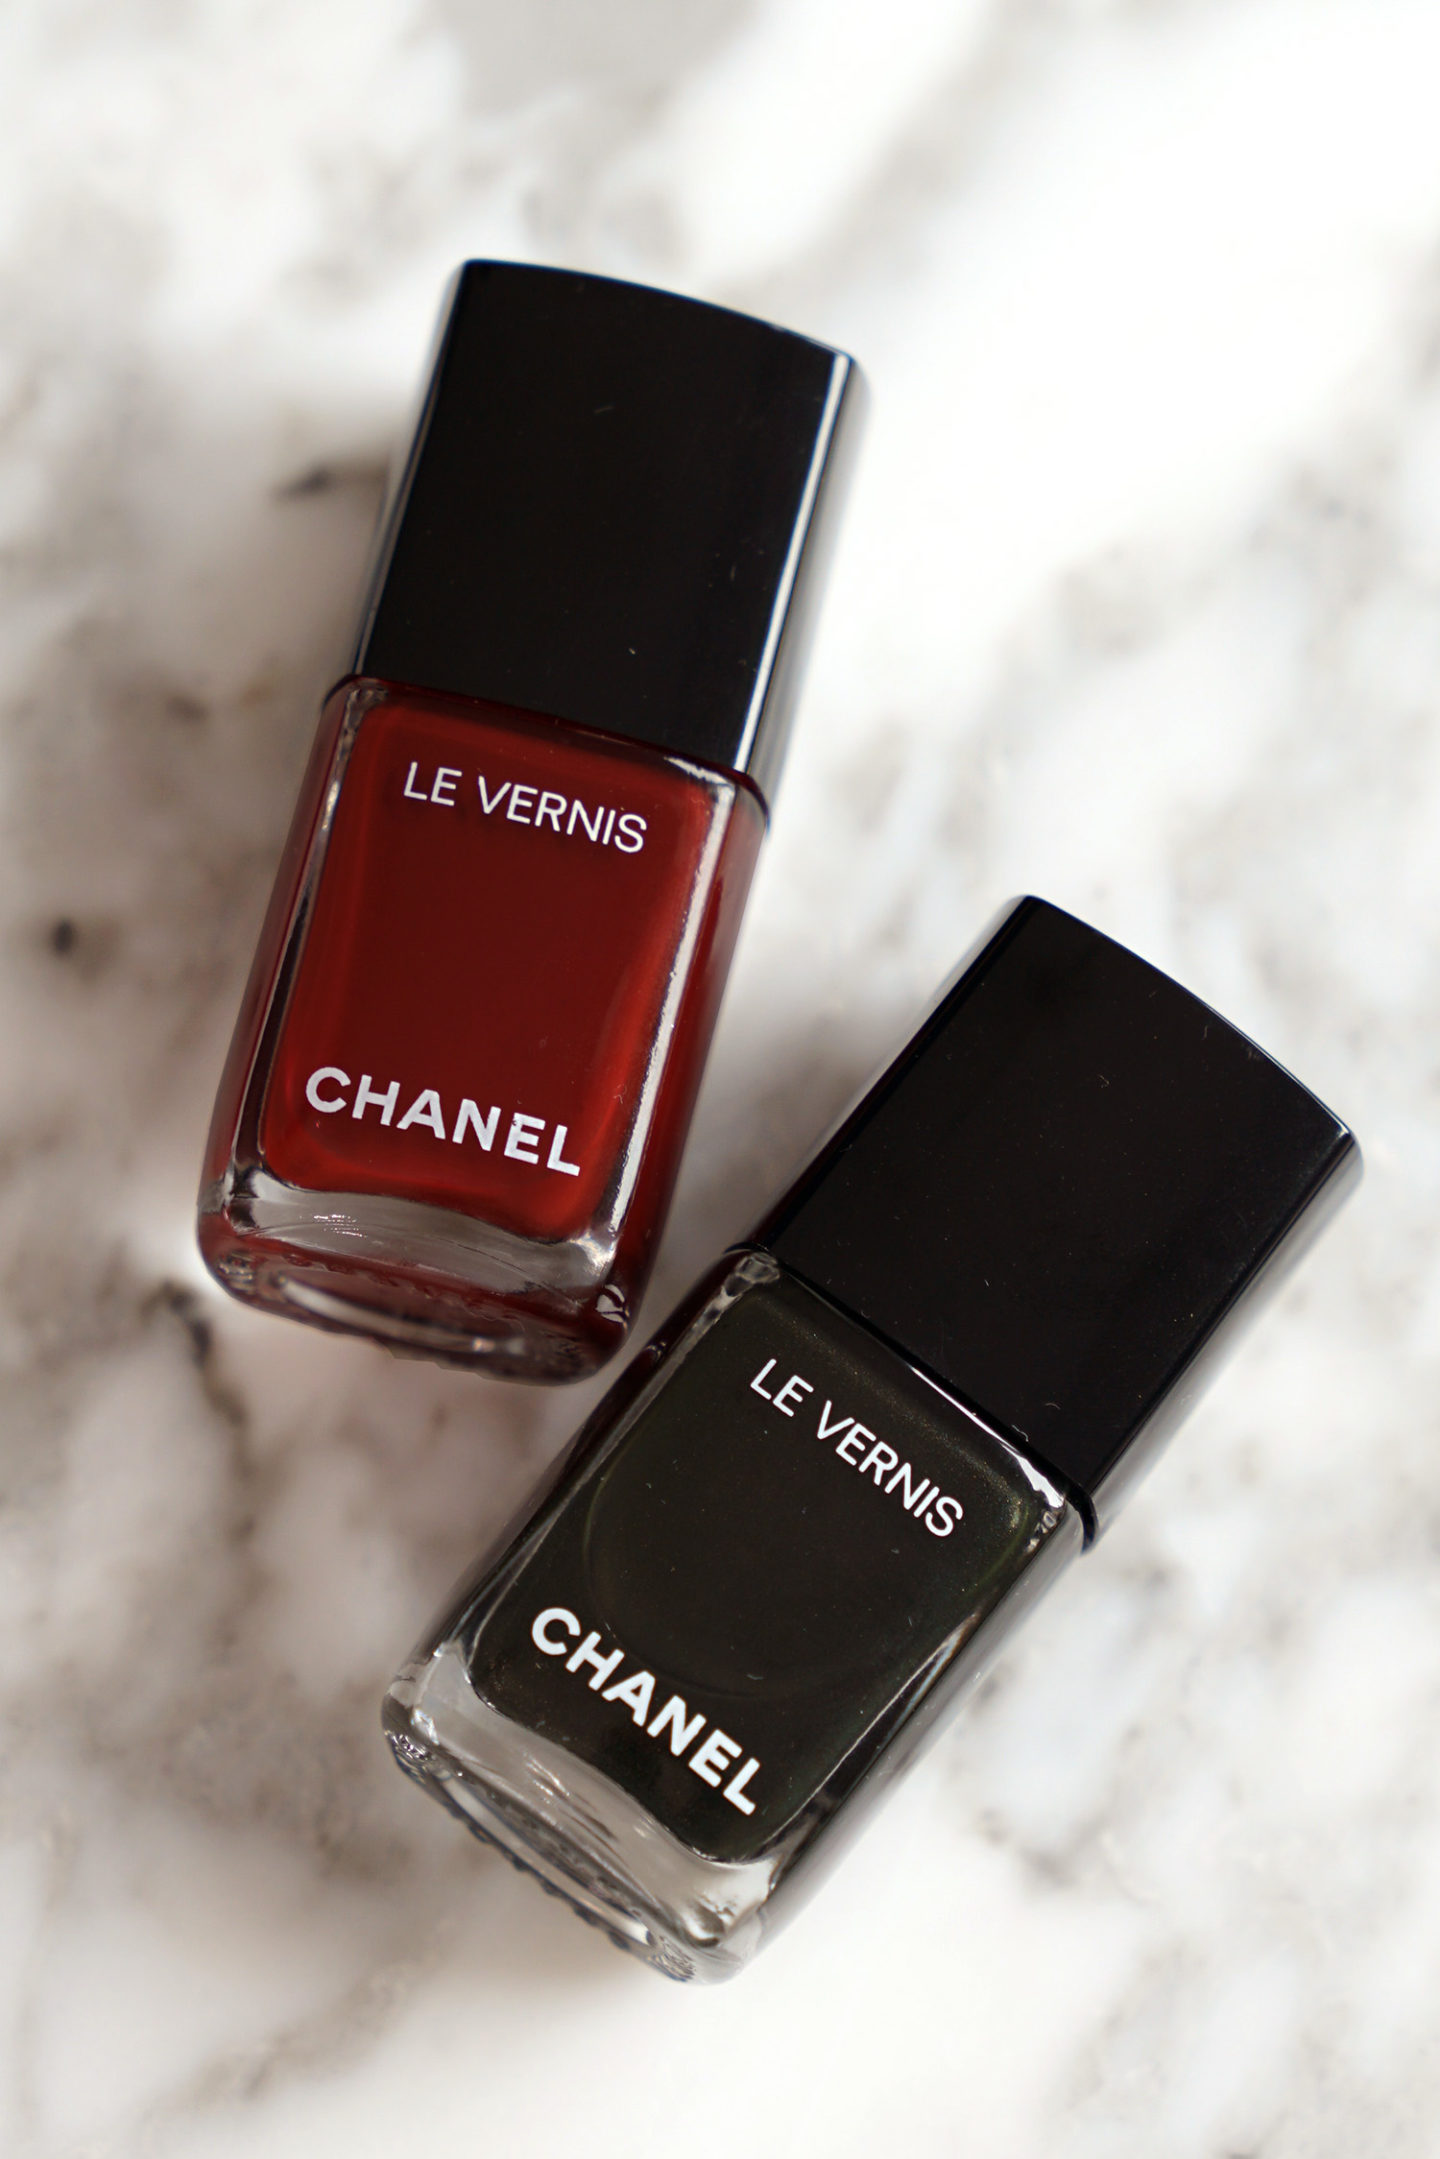 Chanel Holiday 2019 Le Vernis Richesse Profondeur